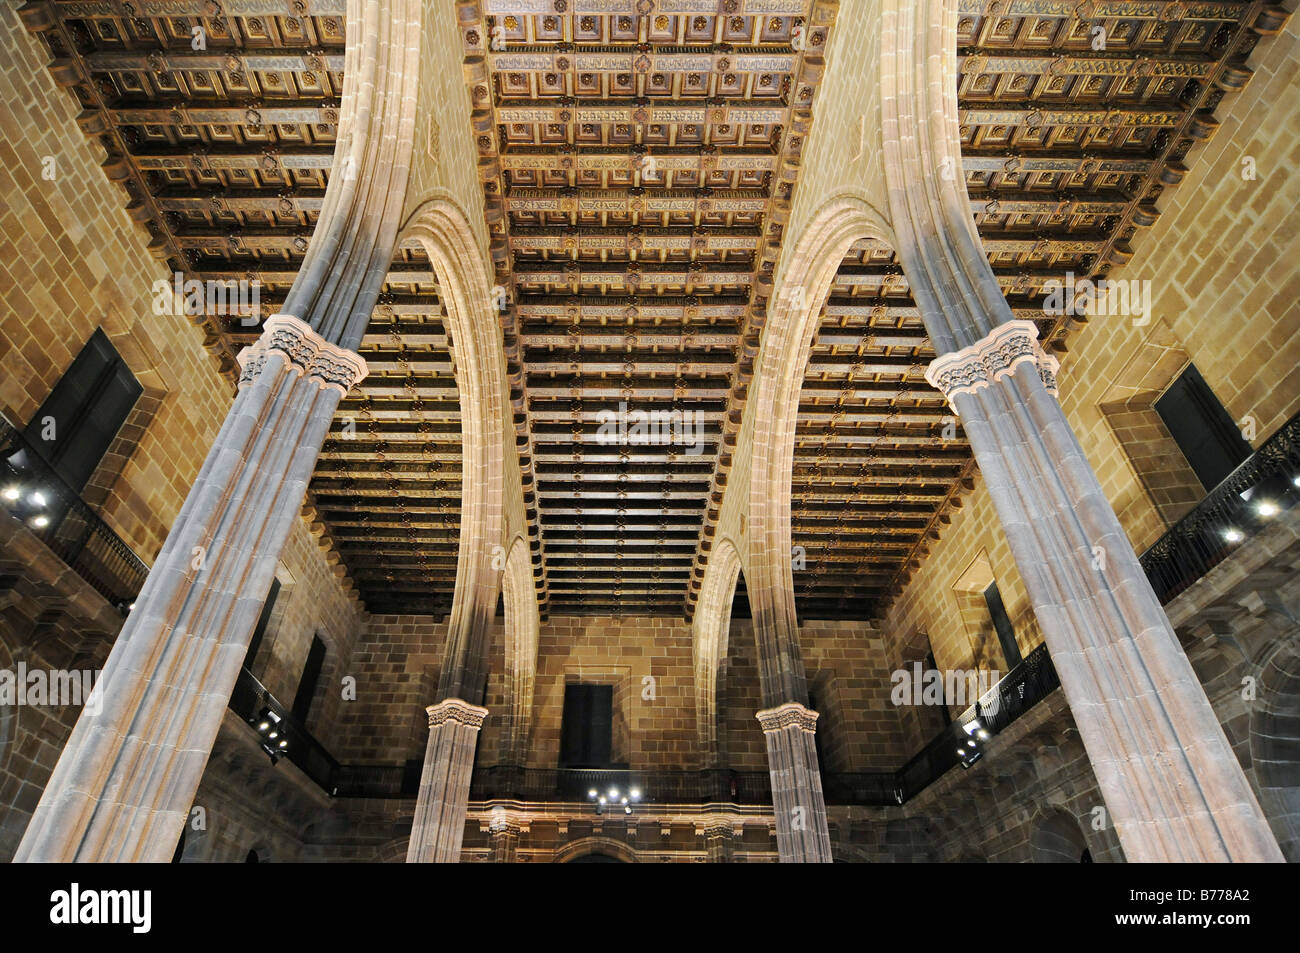 Arched roof, entrance hall, parlour, Palacio de la Llotja de Mar, former stock exchange, Barcelona, Catalonia, Spain, Stock Photo